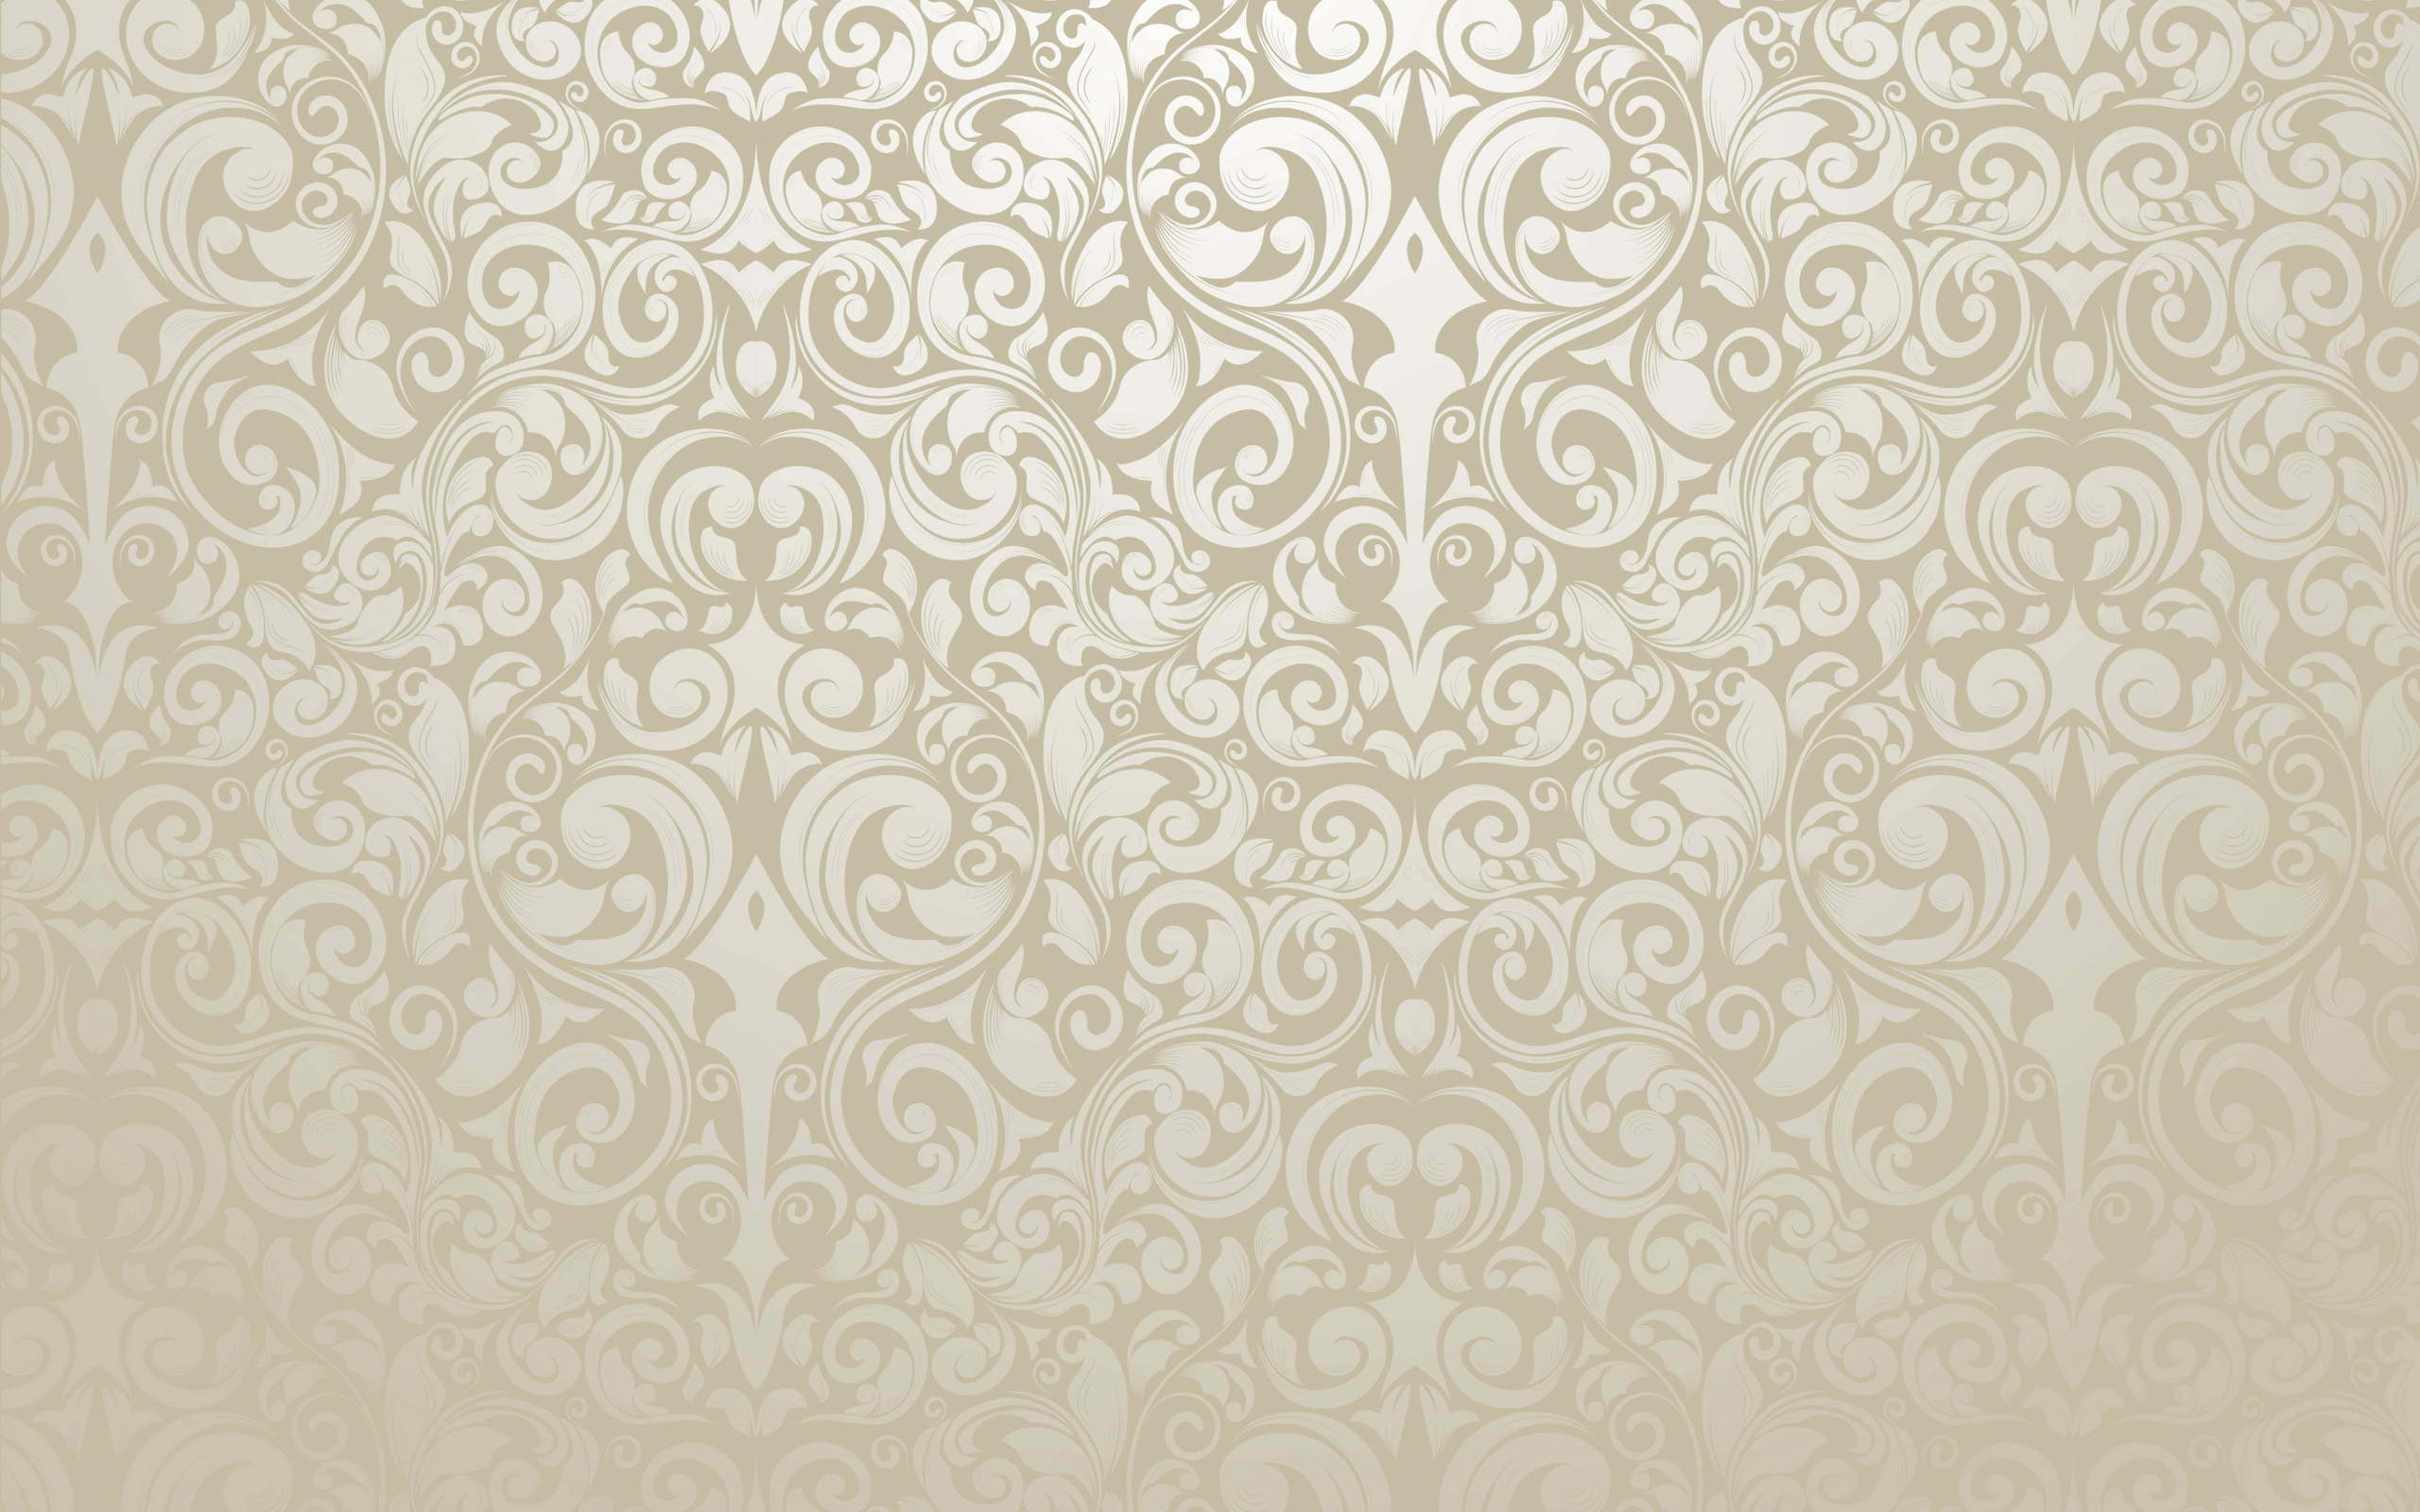 Antique Backgrounds | PixelsTalk Net